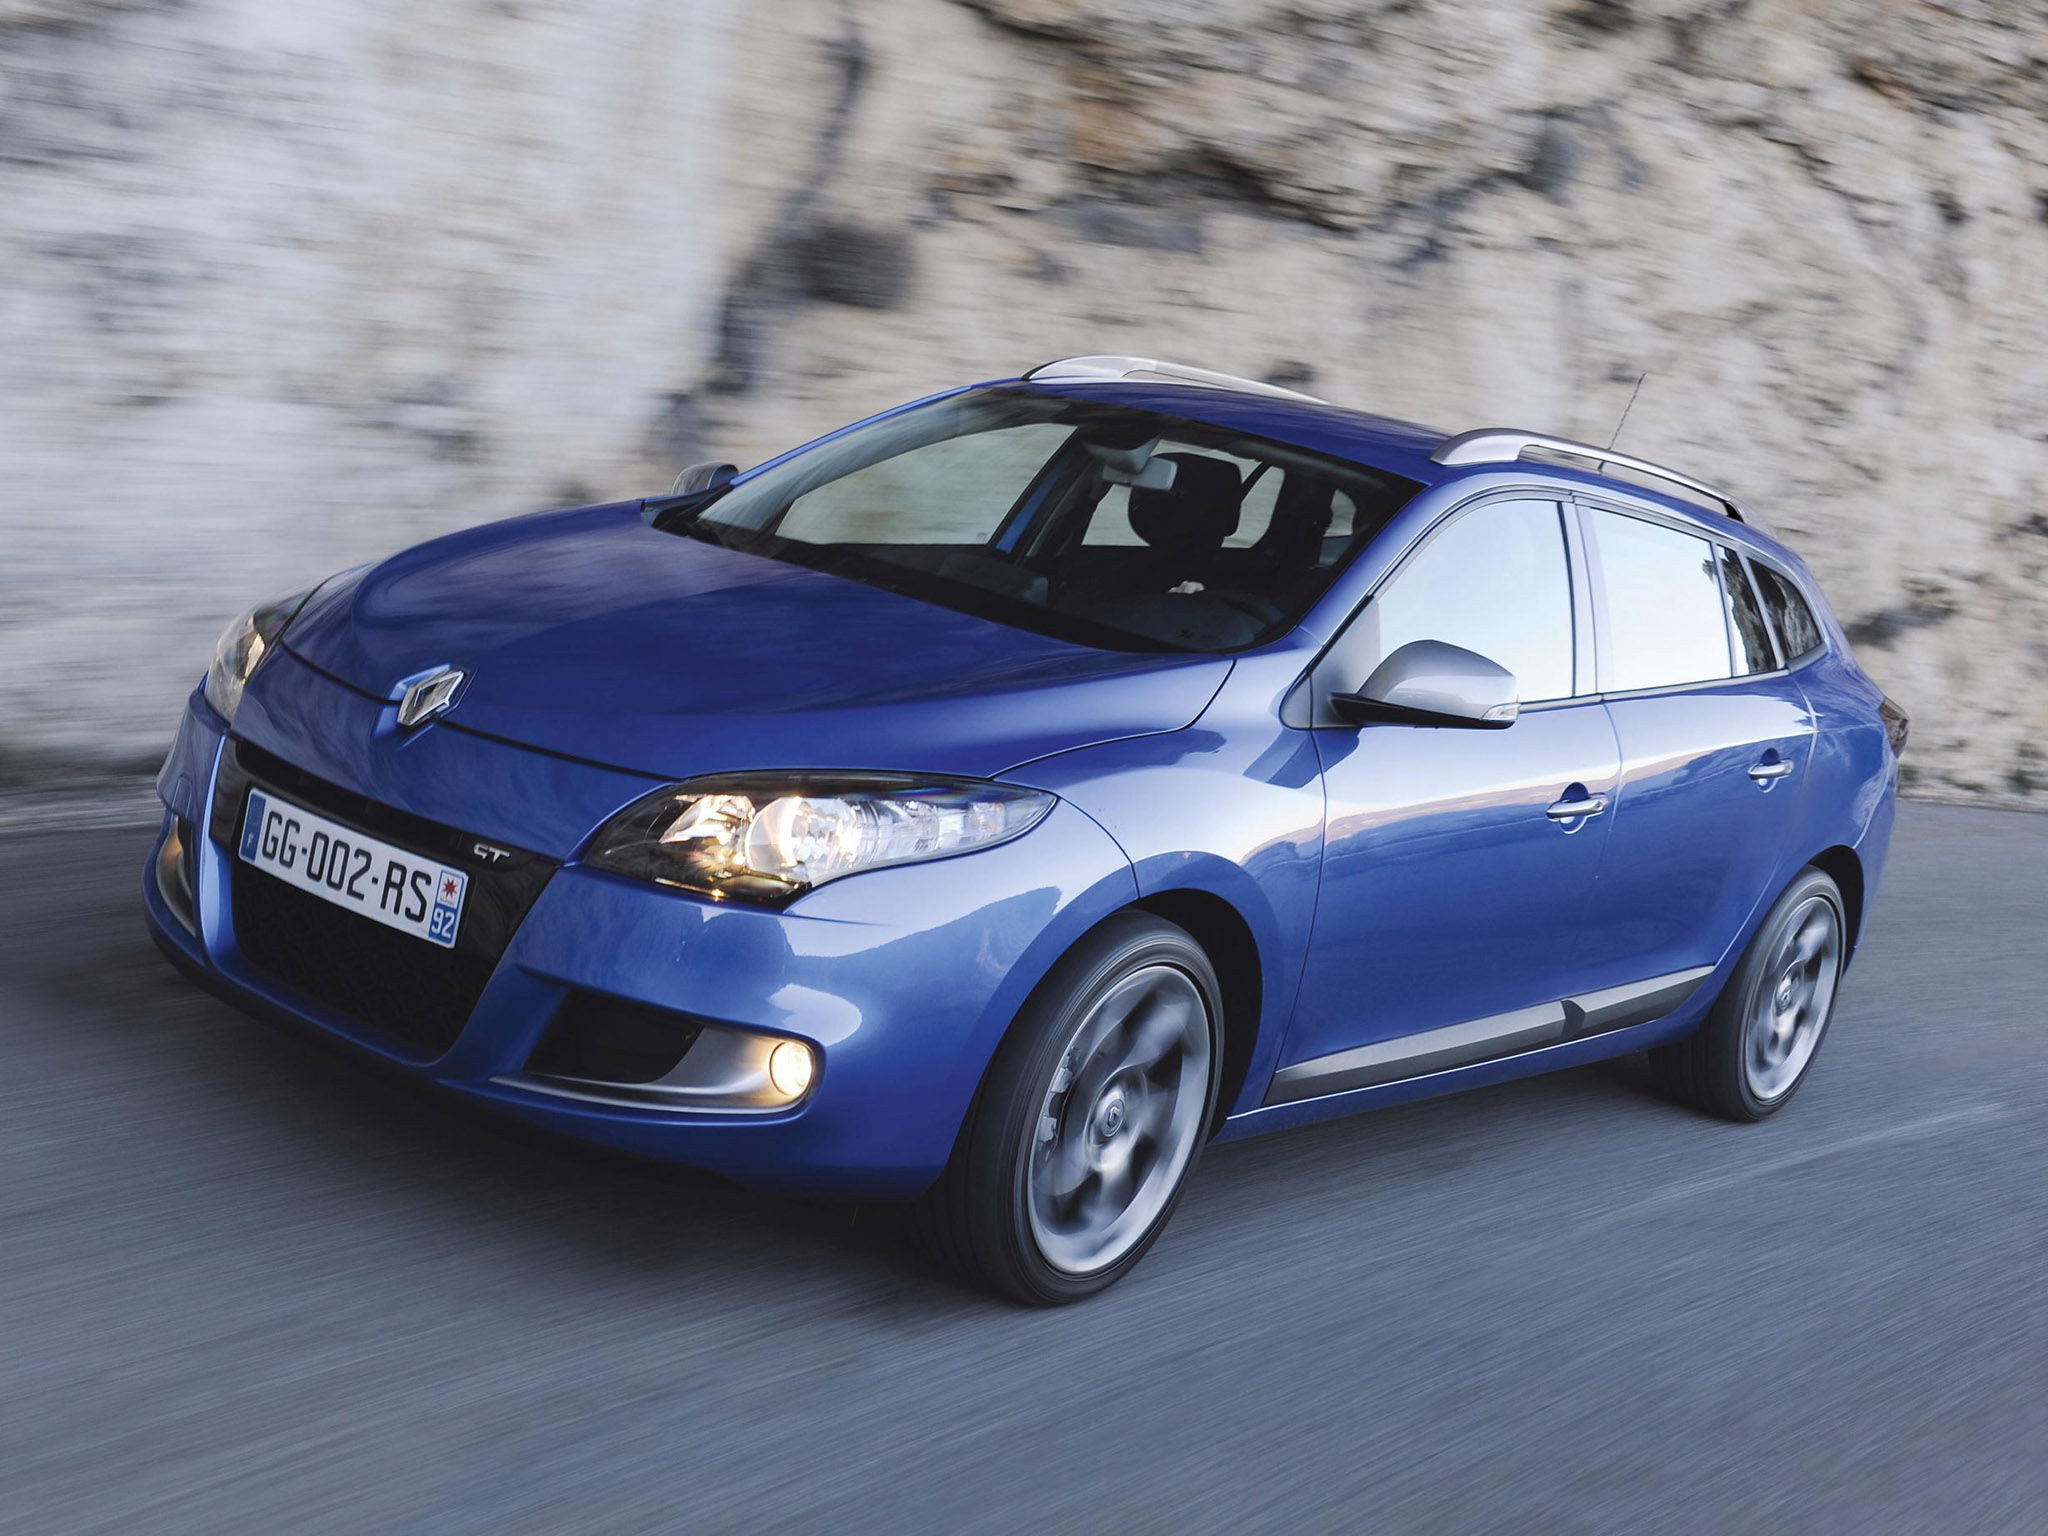 renault megane gt break 2010 renault megane gt break 2010 photo 05 car in pictures car photo. Black Bedroom Furniture Sets. Home Design Ideas